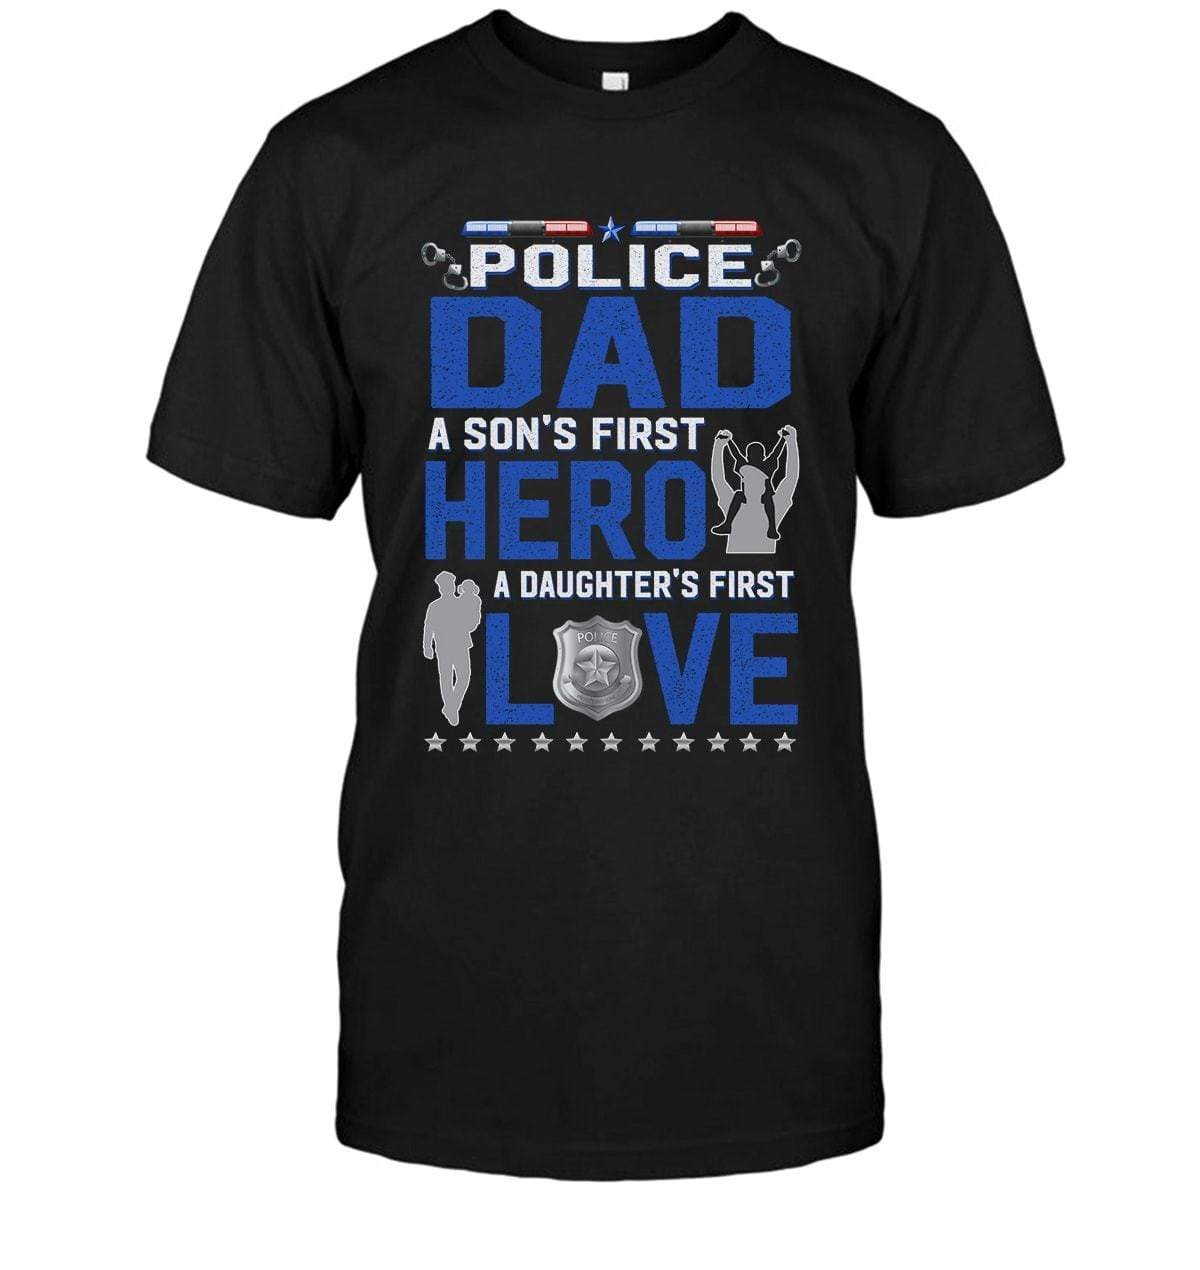 2279c8990 T-shirts Basic Unisex Tee / XS / Black Police Dad Son's First Hero Shirt